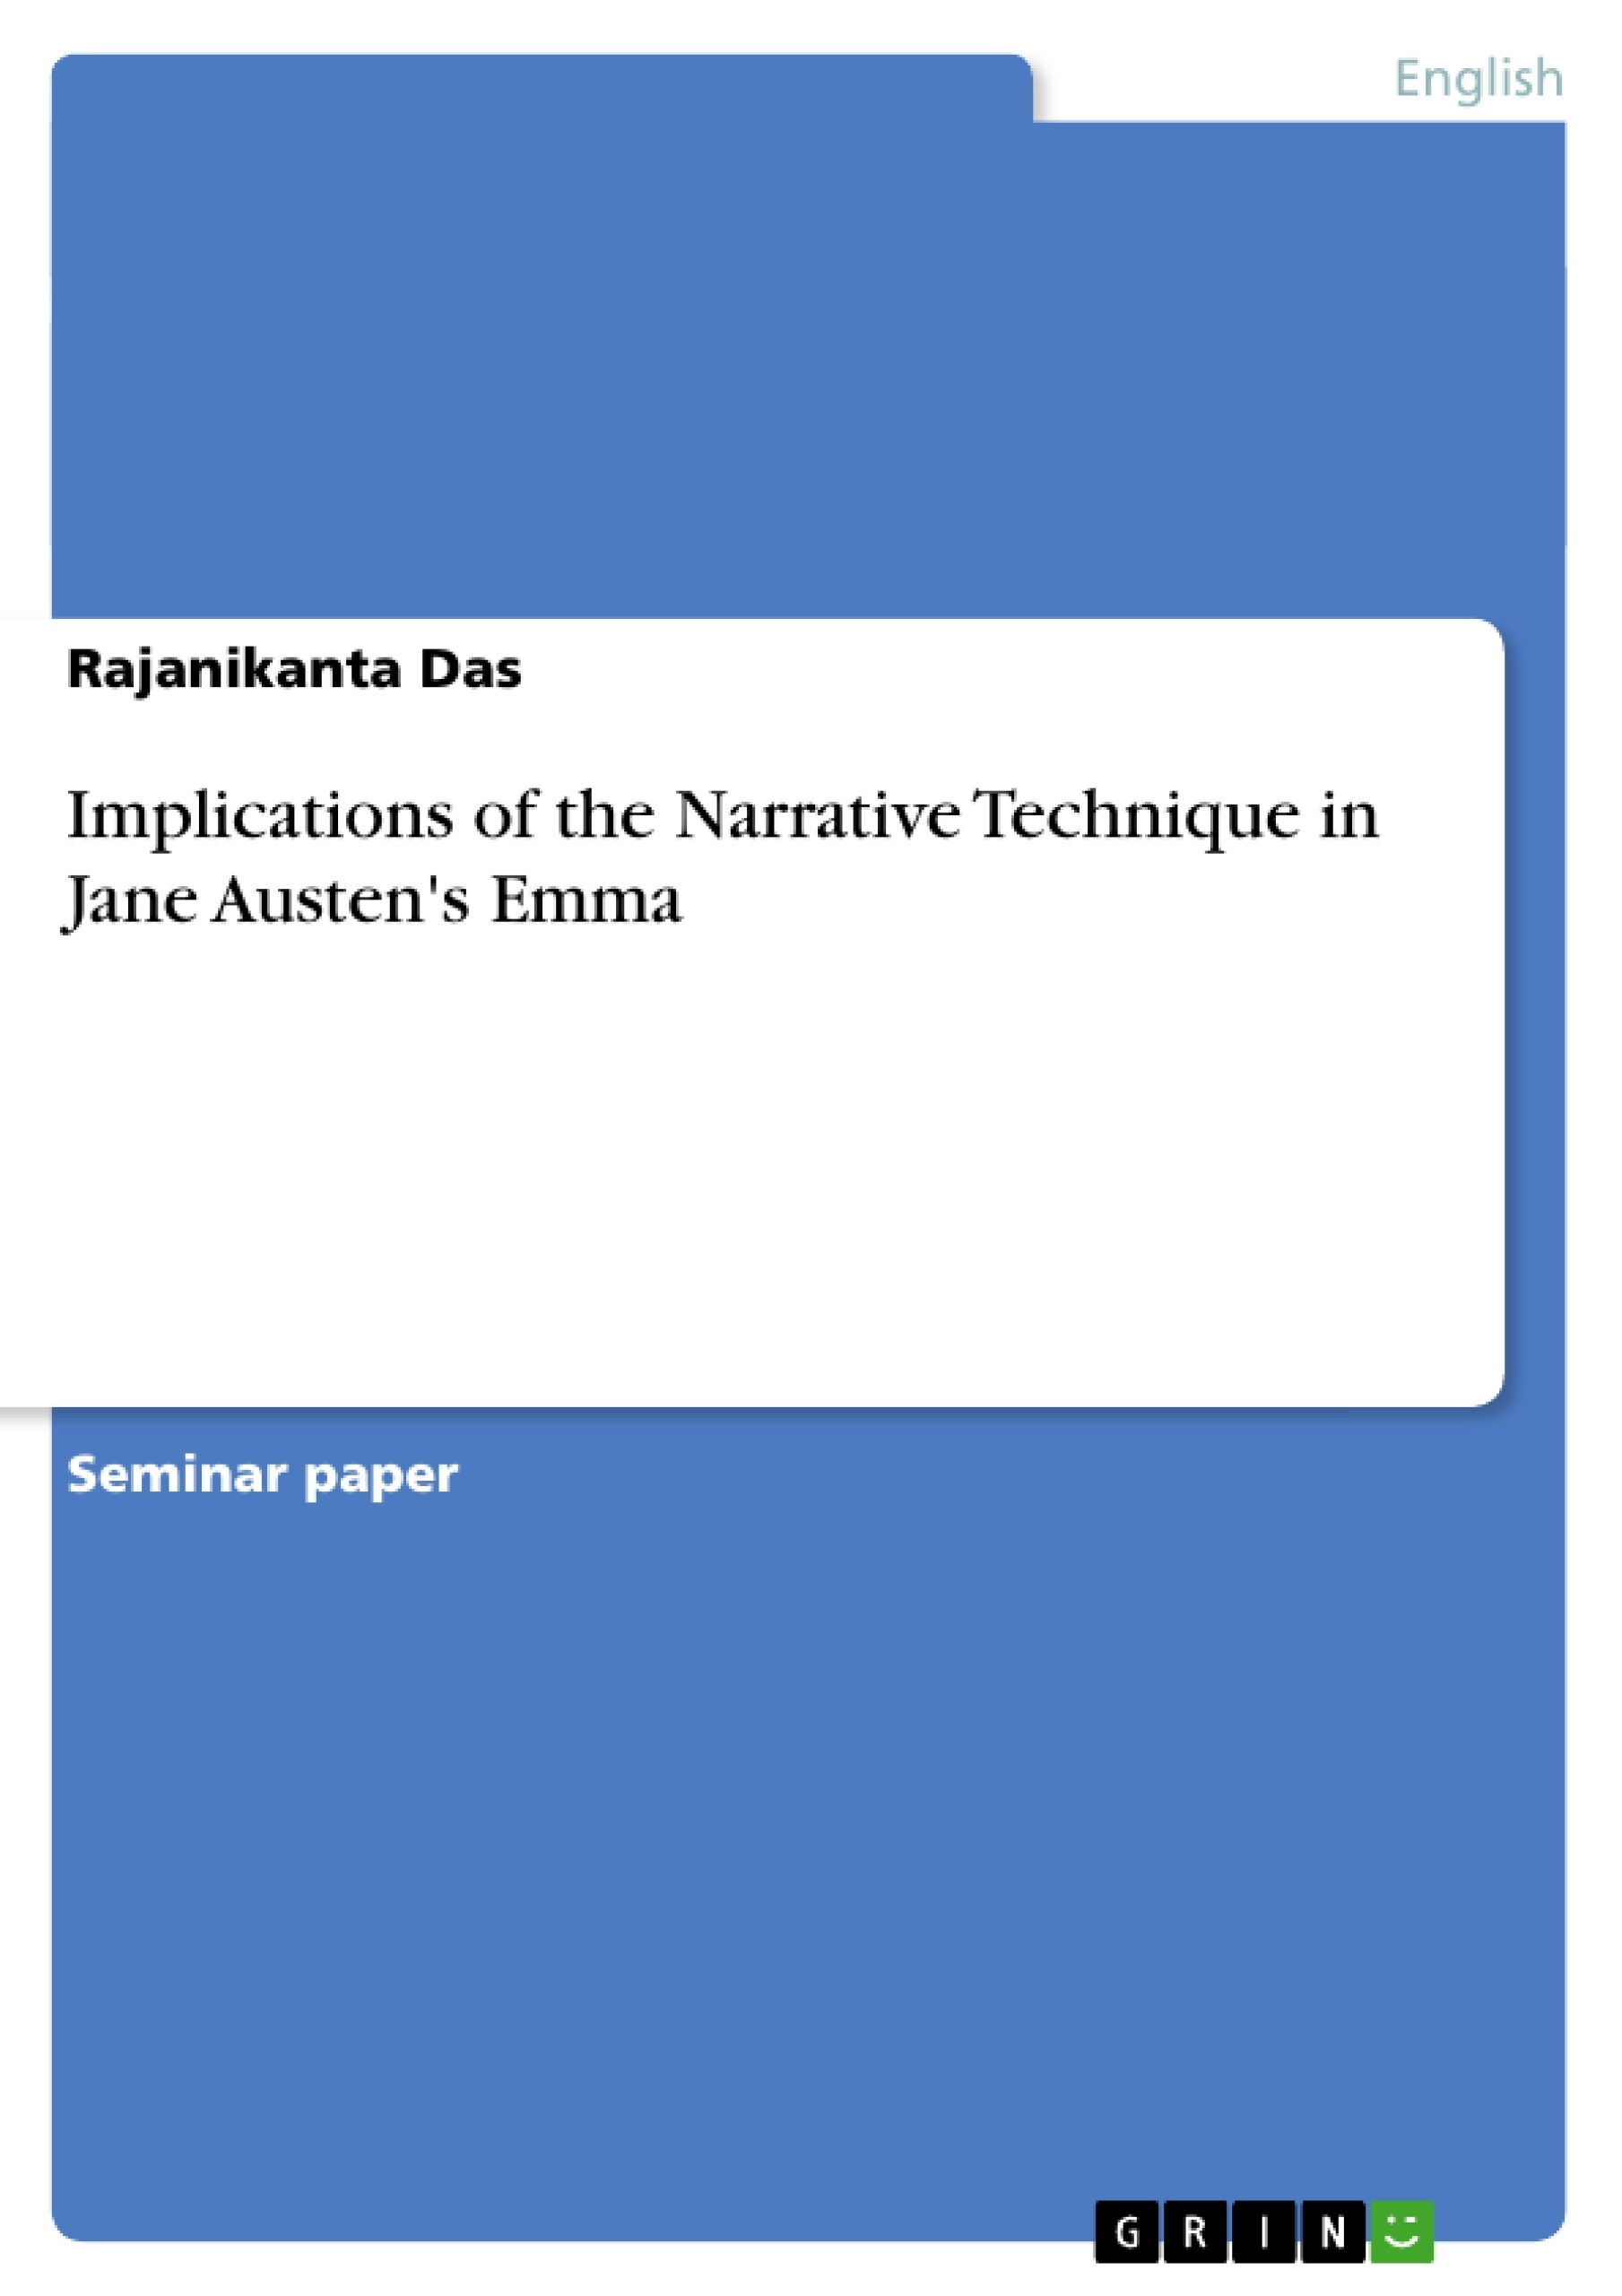 Title: Implications of the Narrative Technique in Jane Austen's Emma